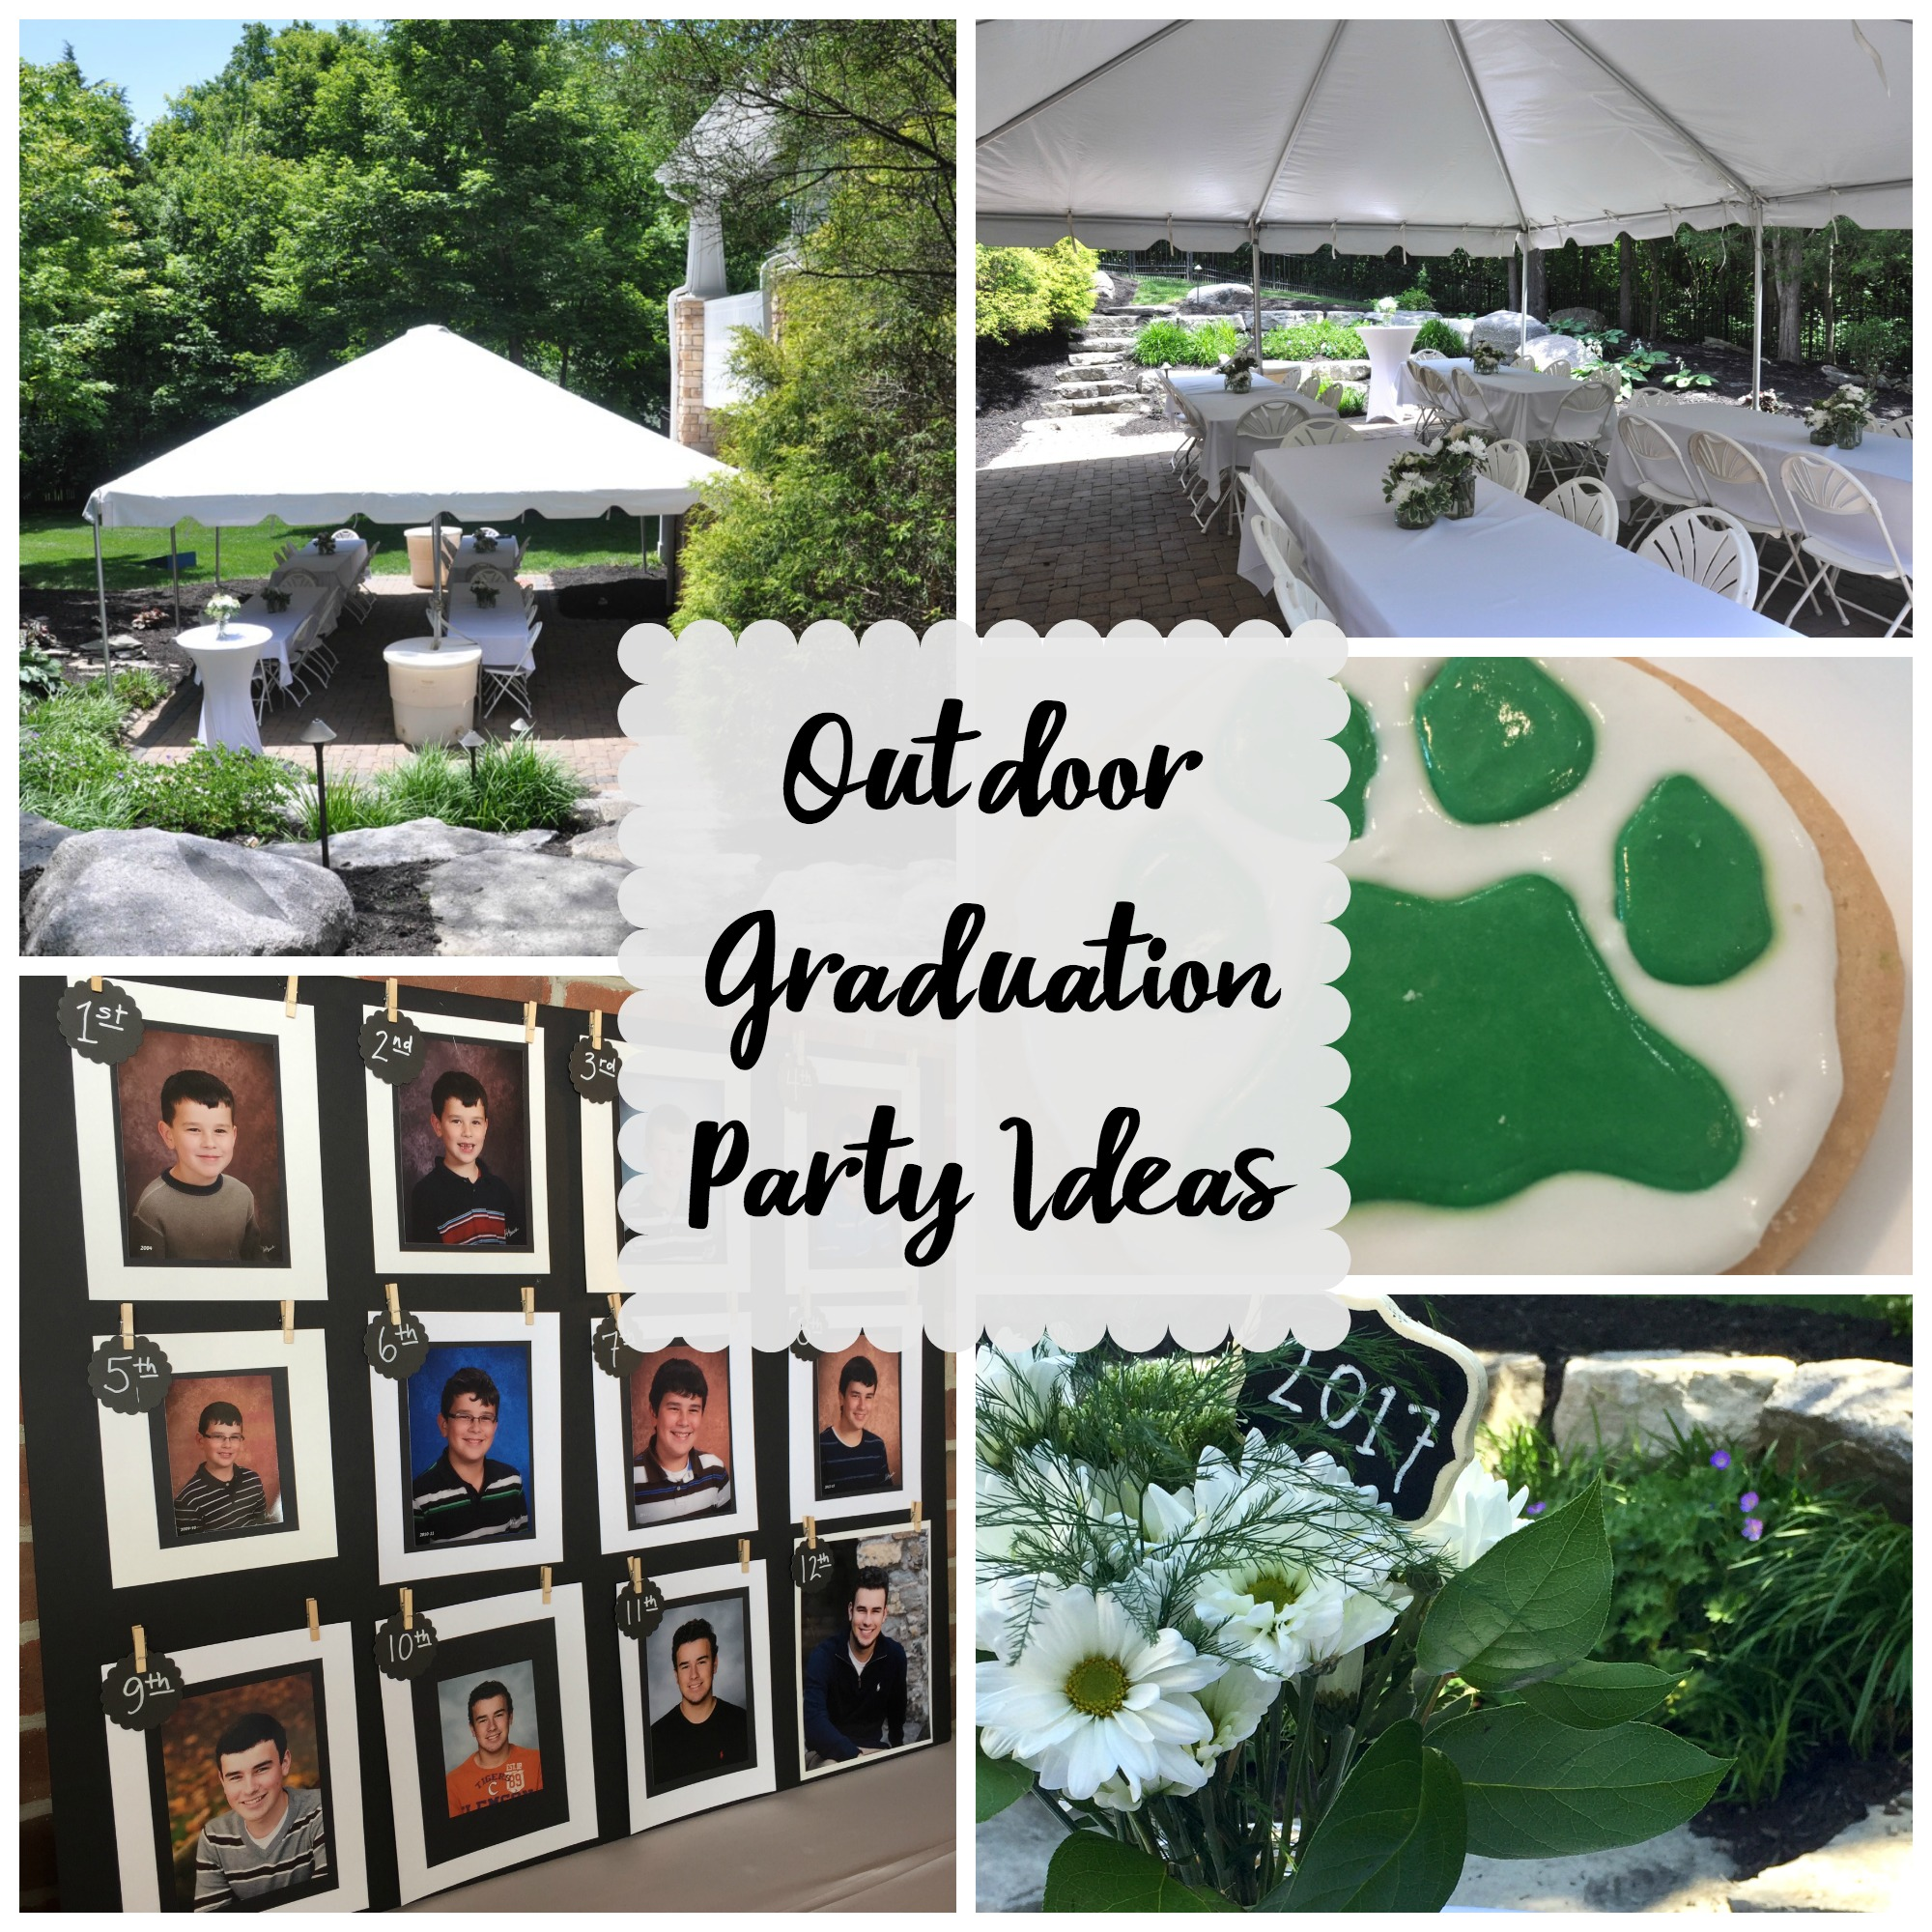 Graduation Party Ideas: Outdoor Graduation Party